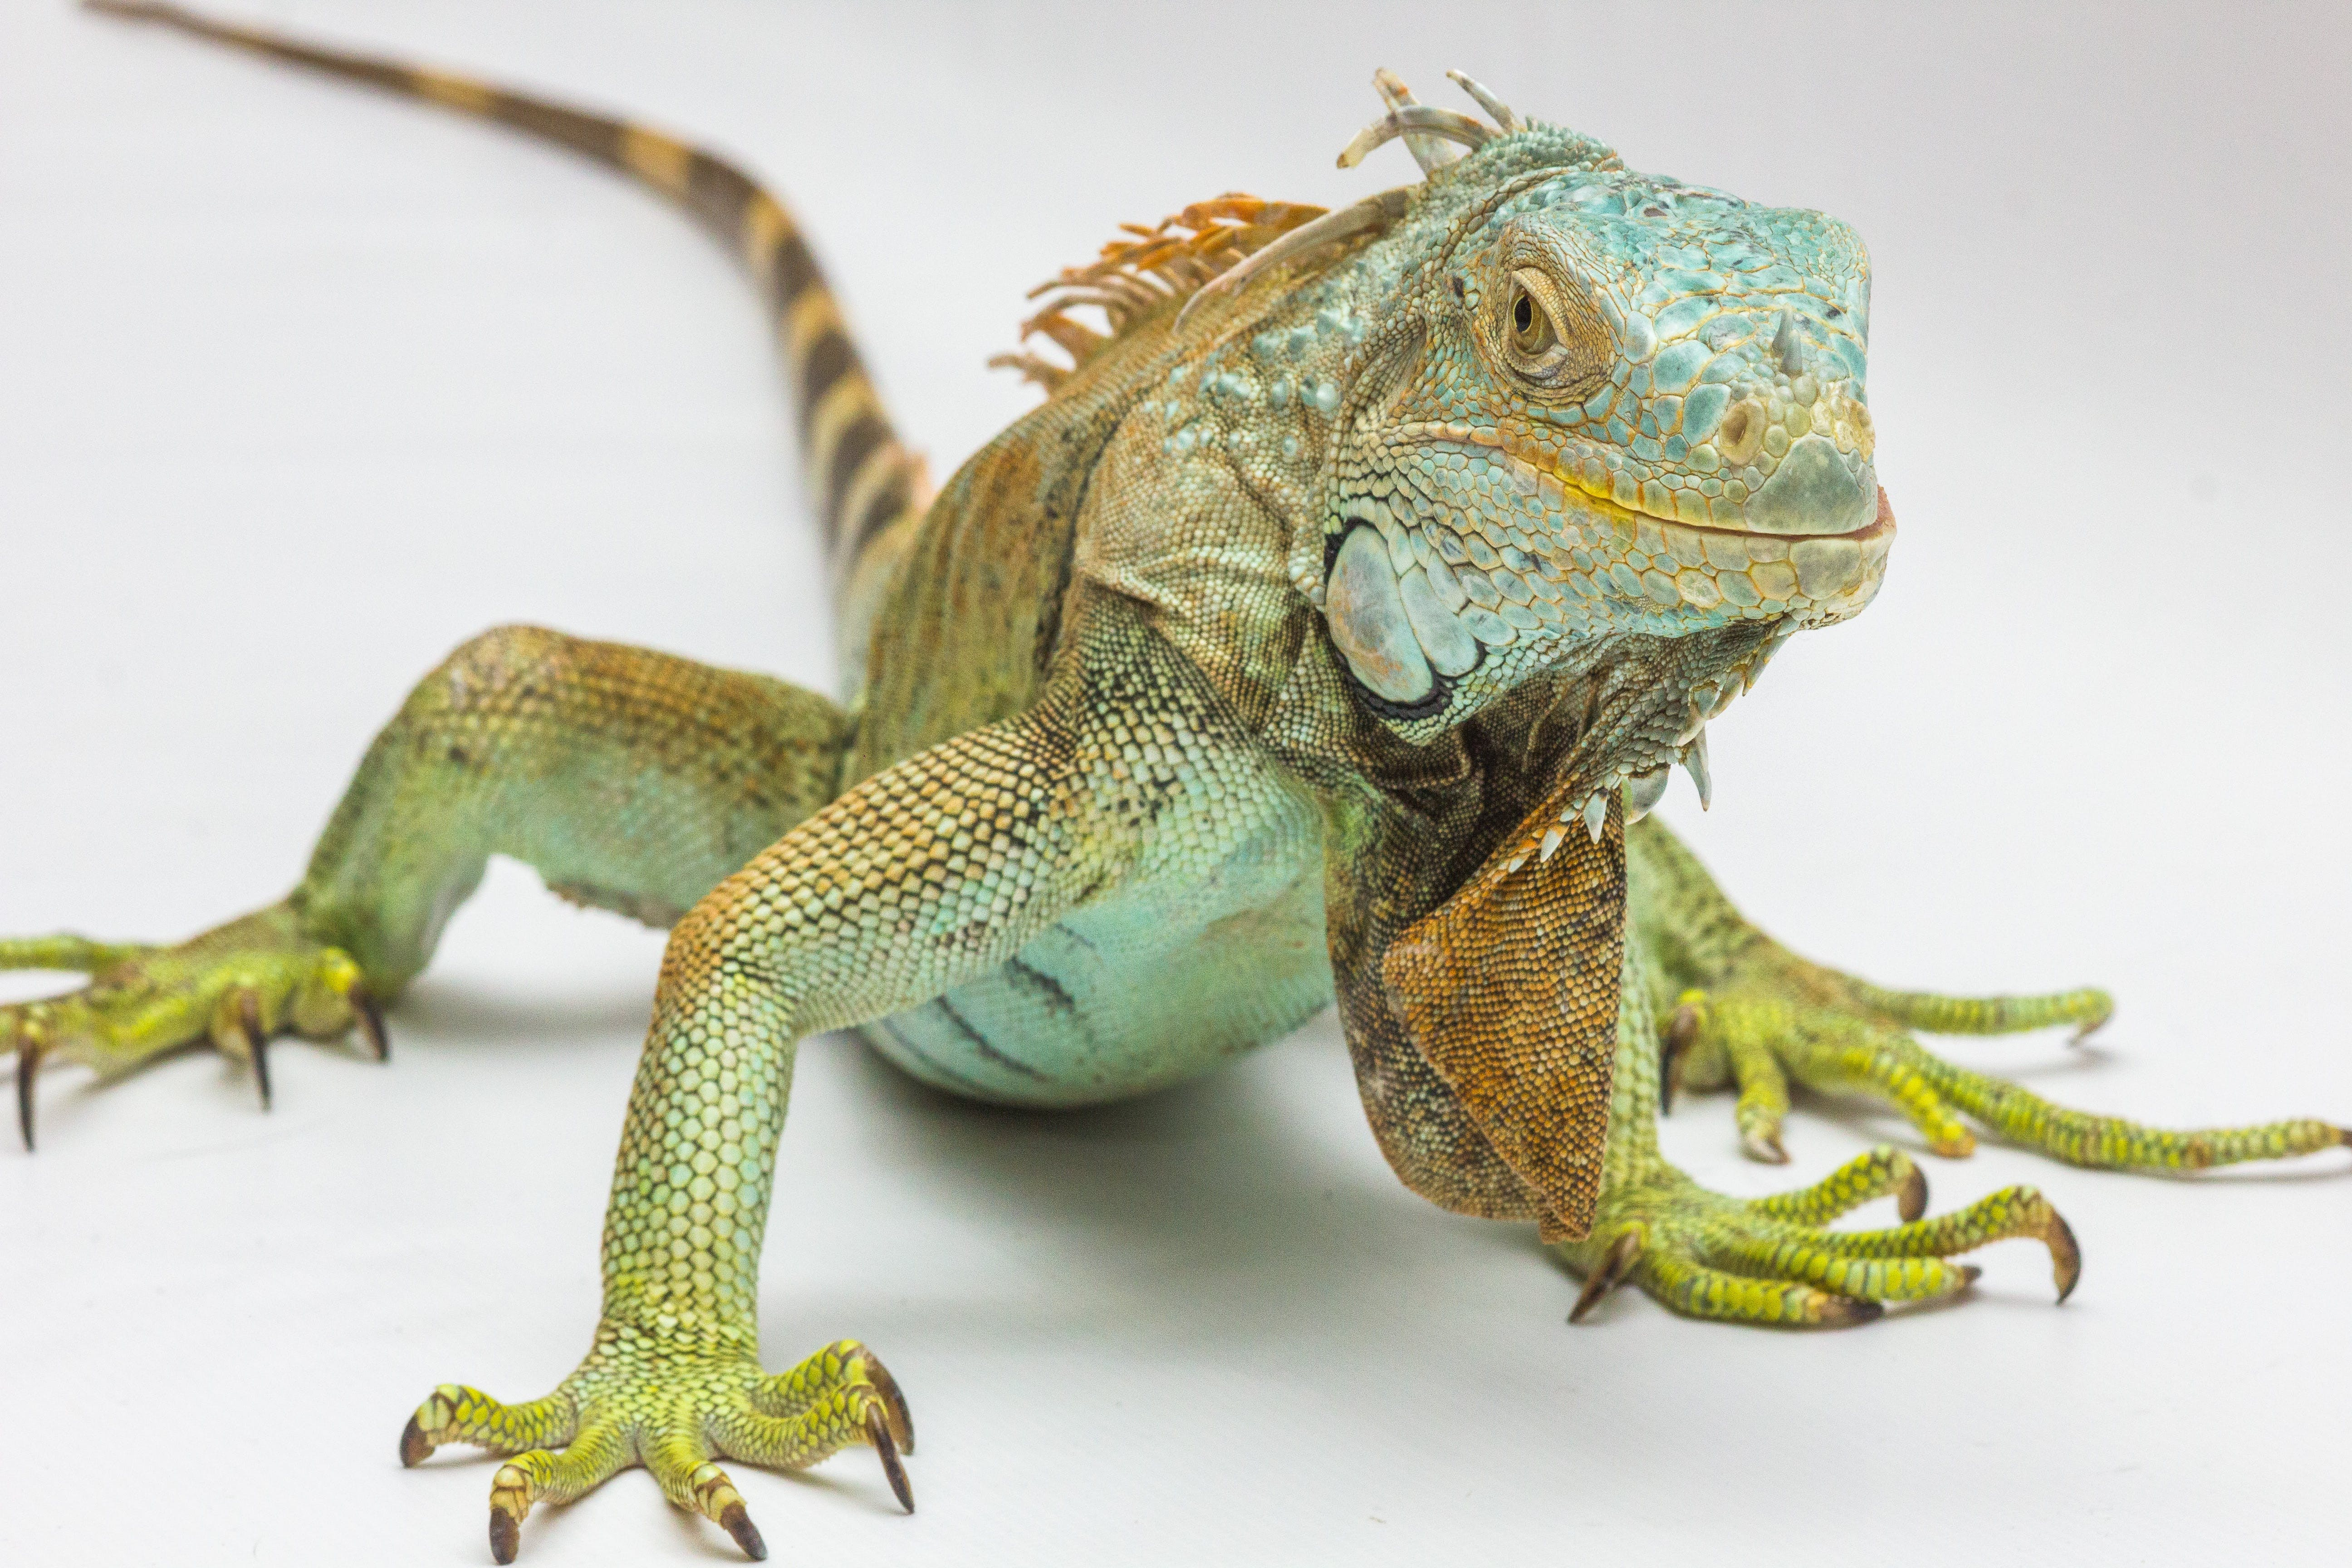 Green and Yellow Iguana